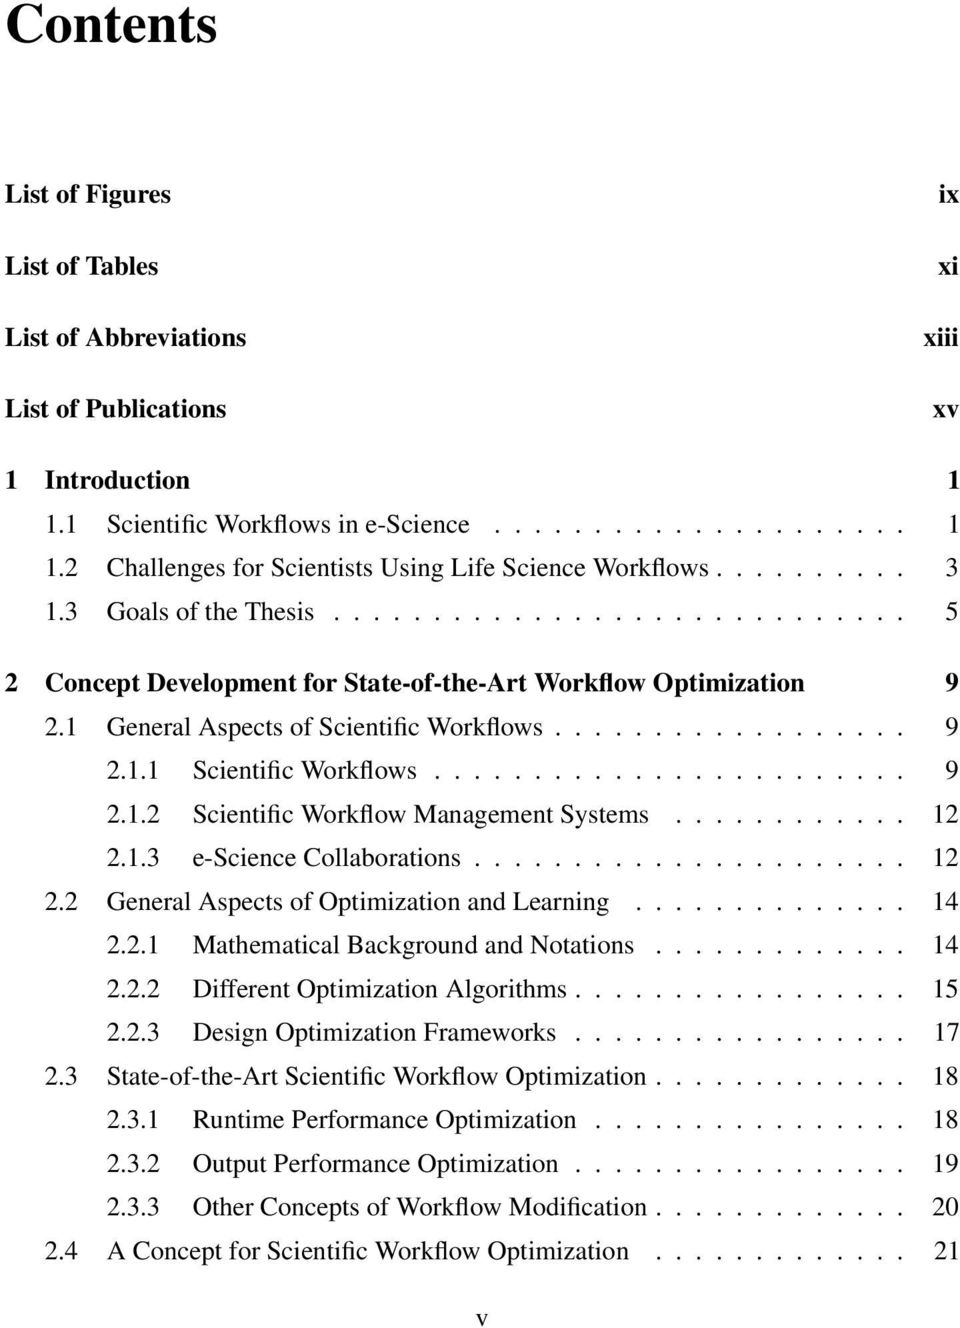 ....................... 9 2.1.2 Scientific Workflow Management Systems............ 12 2.1.3 e-science Collaborations...................... 12 2.2 General Aspects of Optimization and Learning.............. 14 2.